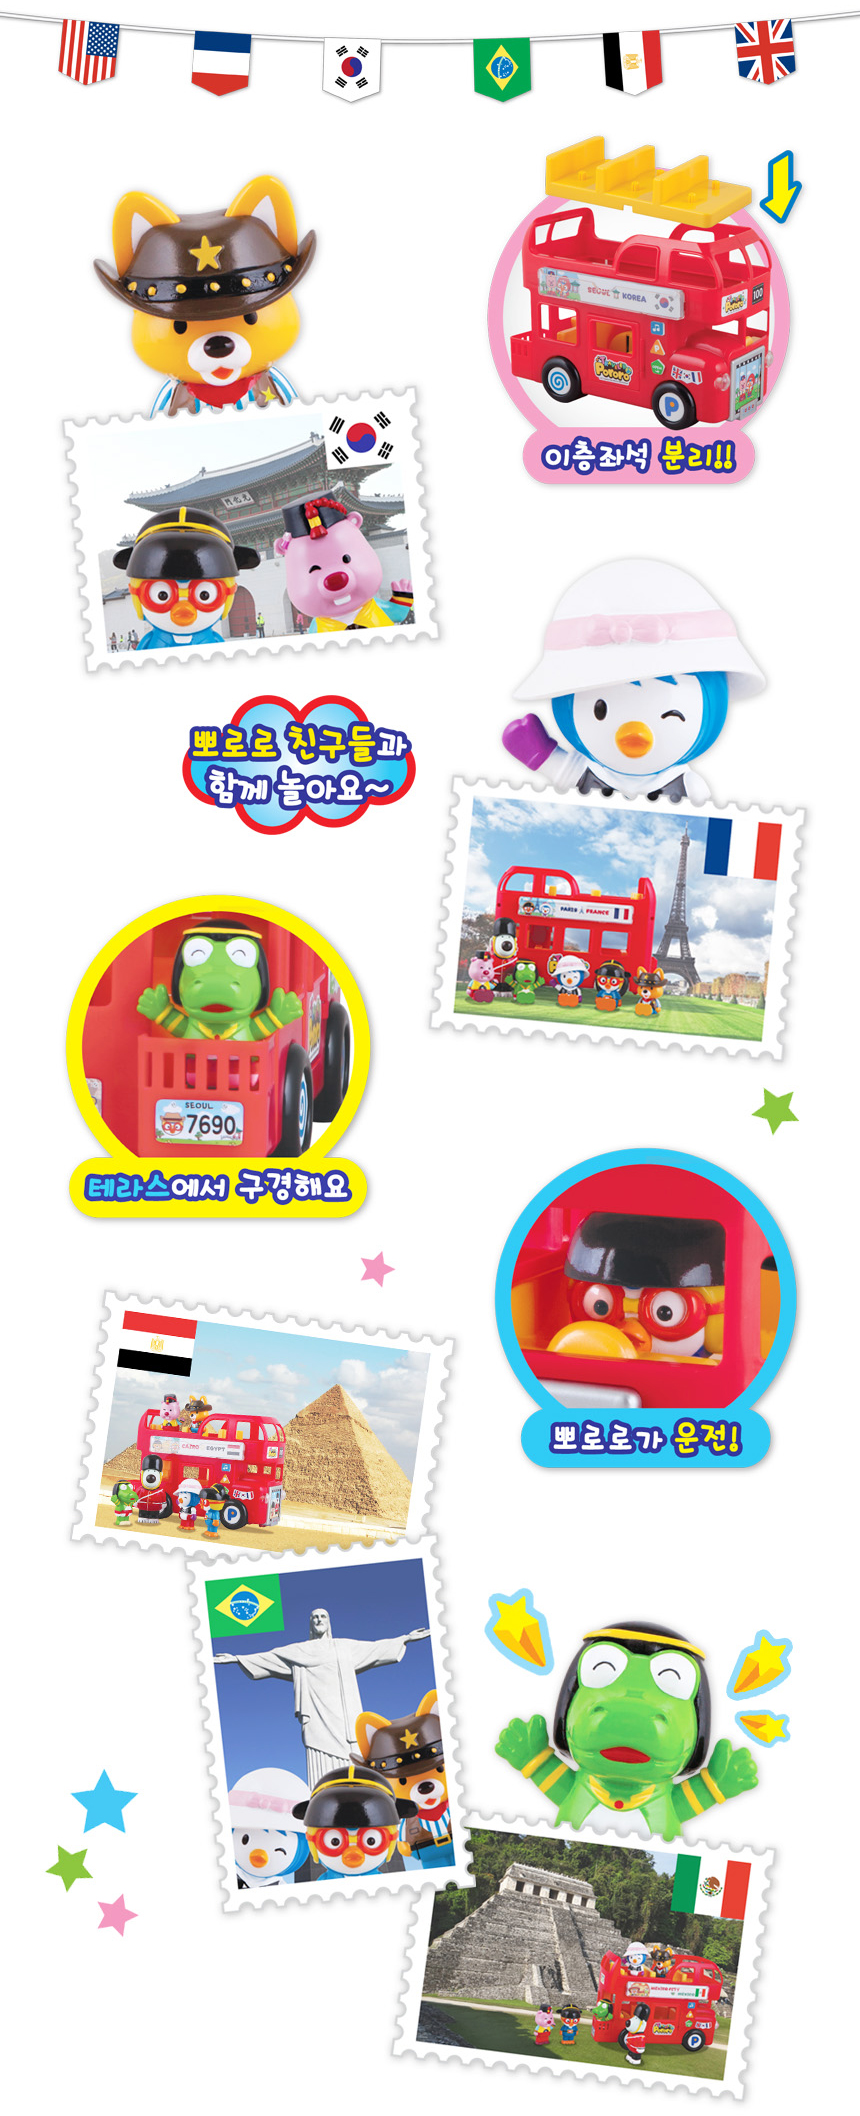 pororo_travel_bus_02.jpg